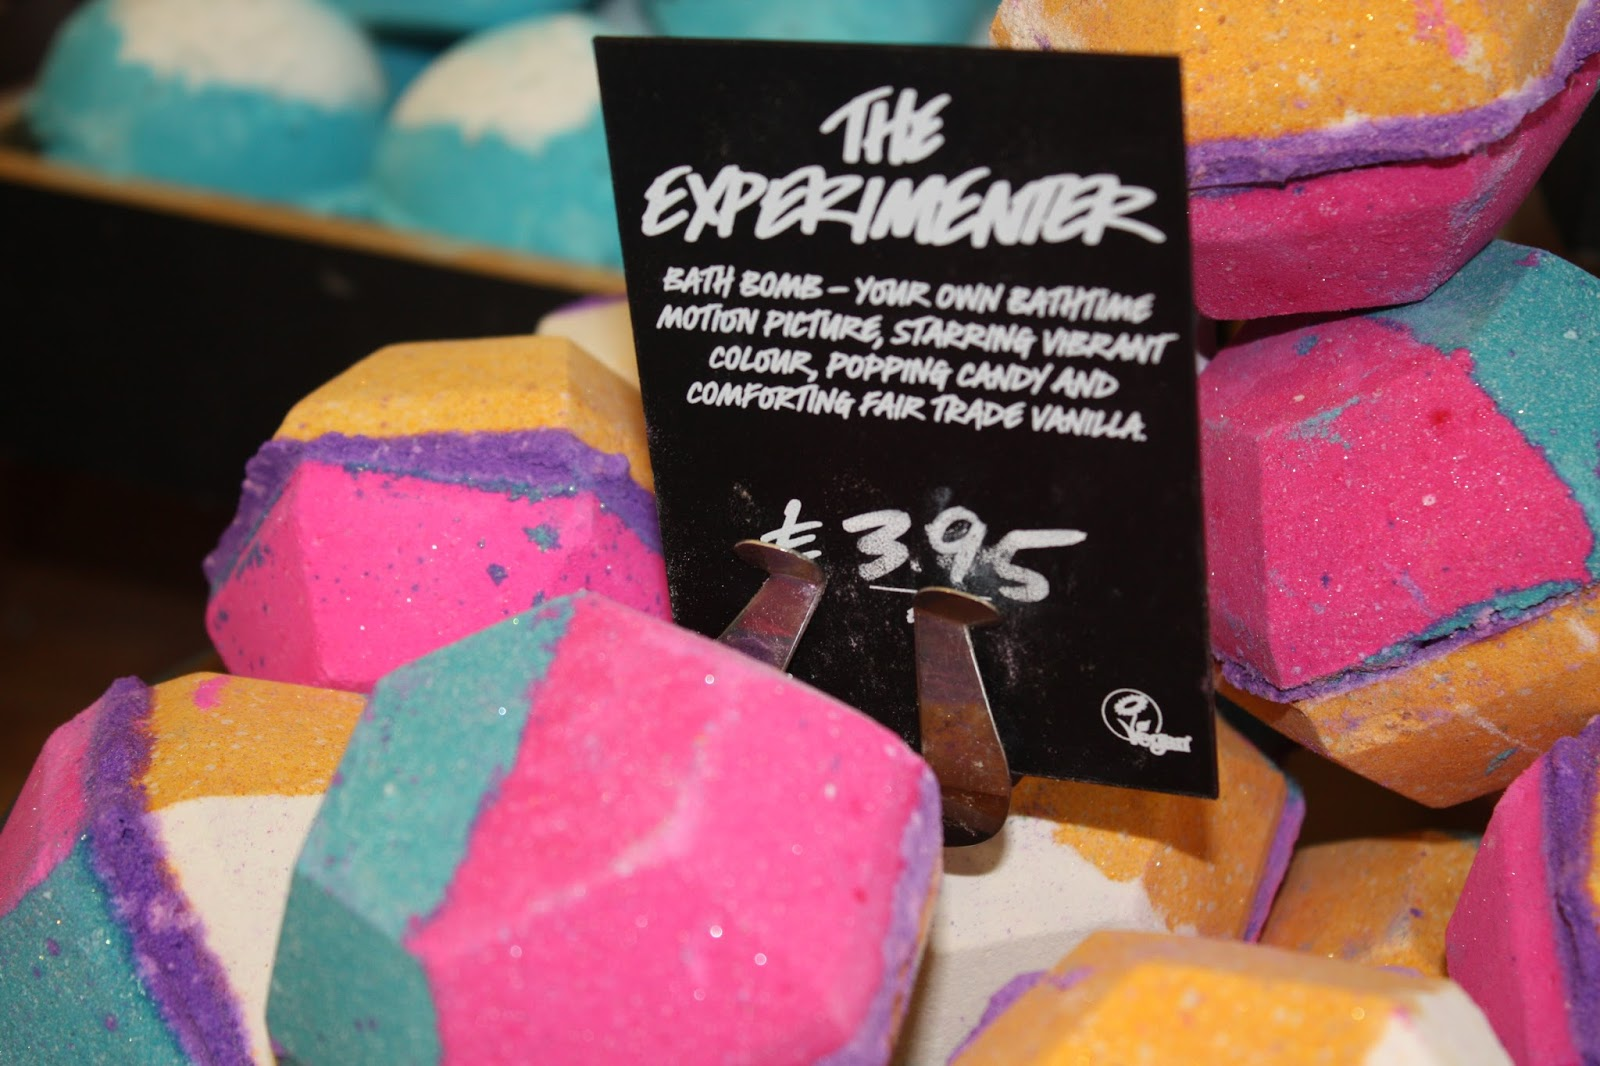 Lush Summer Event Oxford Street Launch The Experimenter Bath Bomb